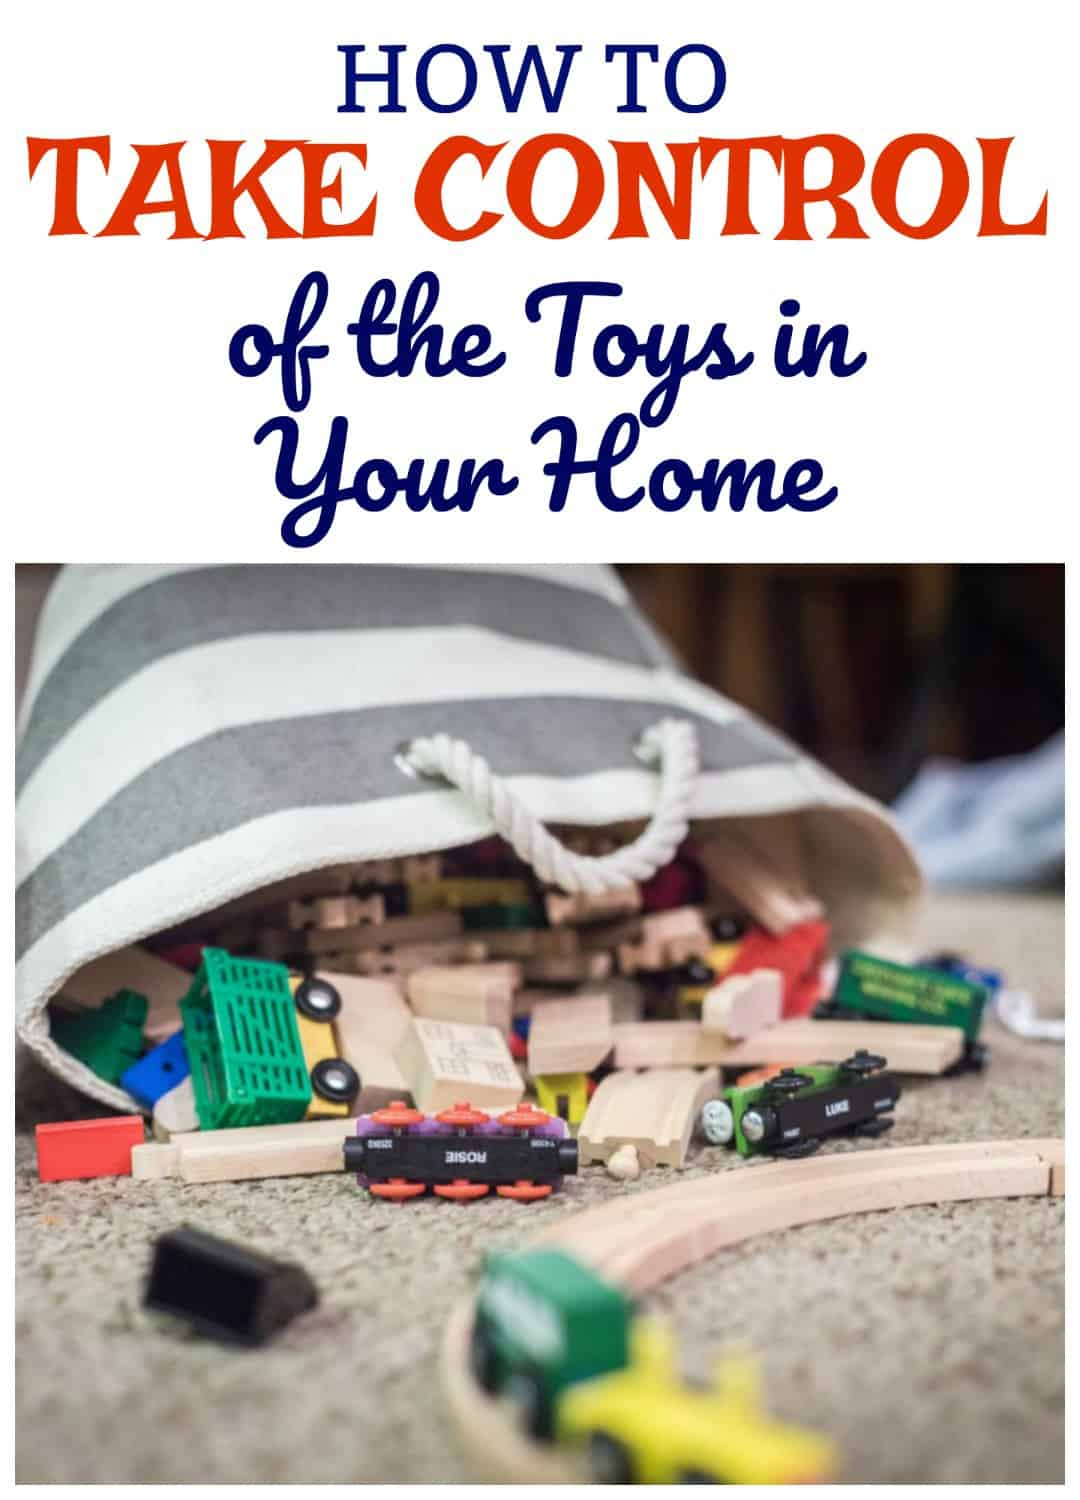 5 ways to reduce toy clutter in your home